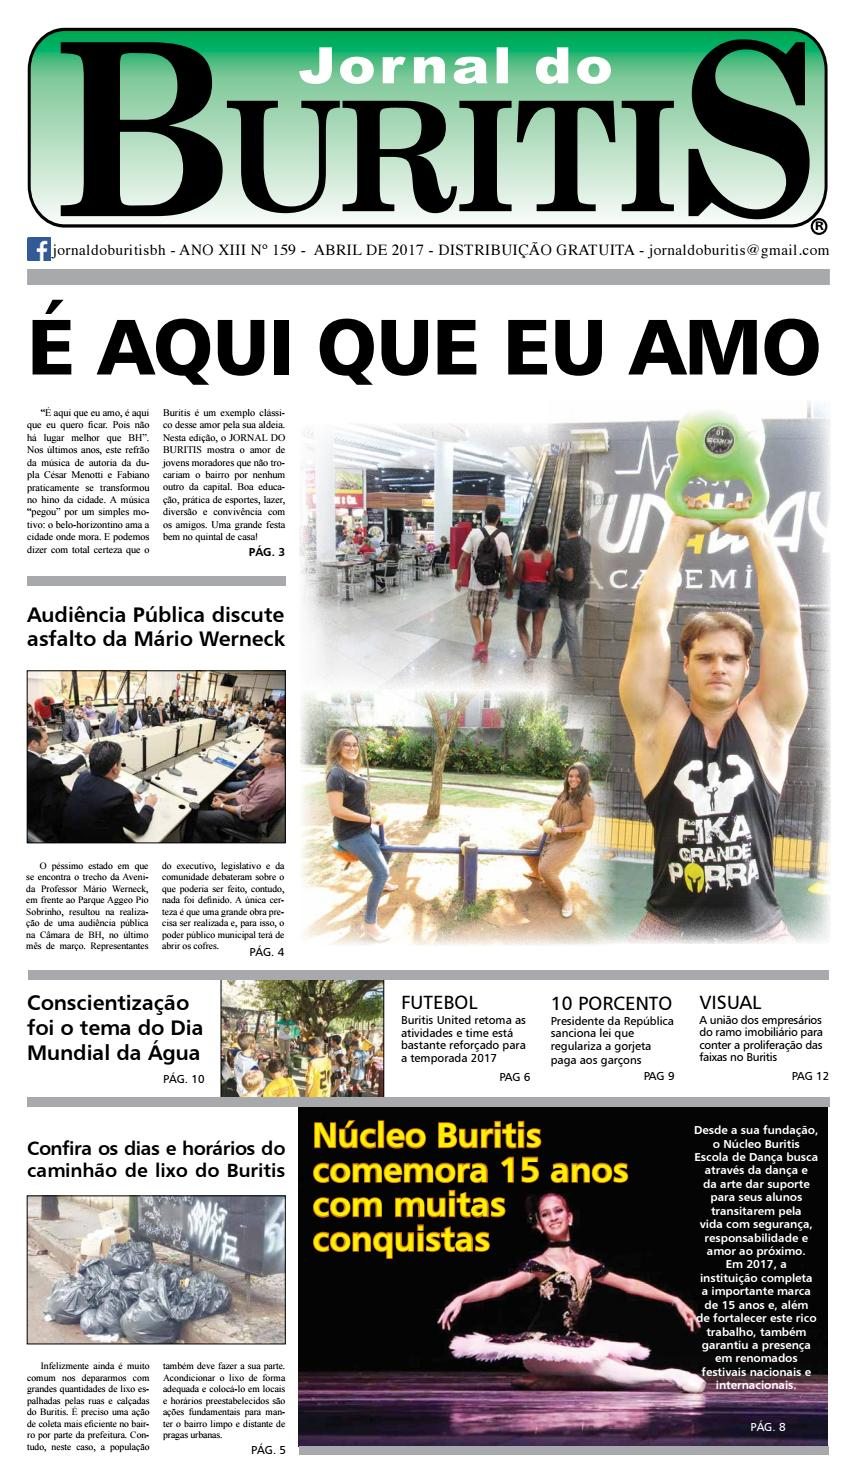 fd1cfe6ceed Jornal do Buritis Abril 2017 by Jornal do Buritis - issuu